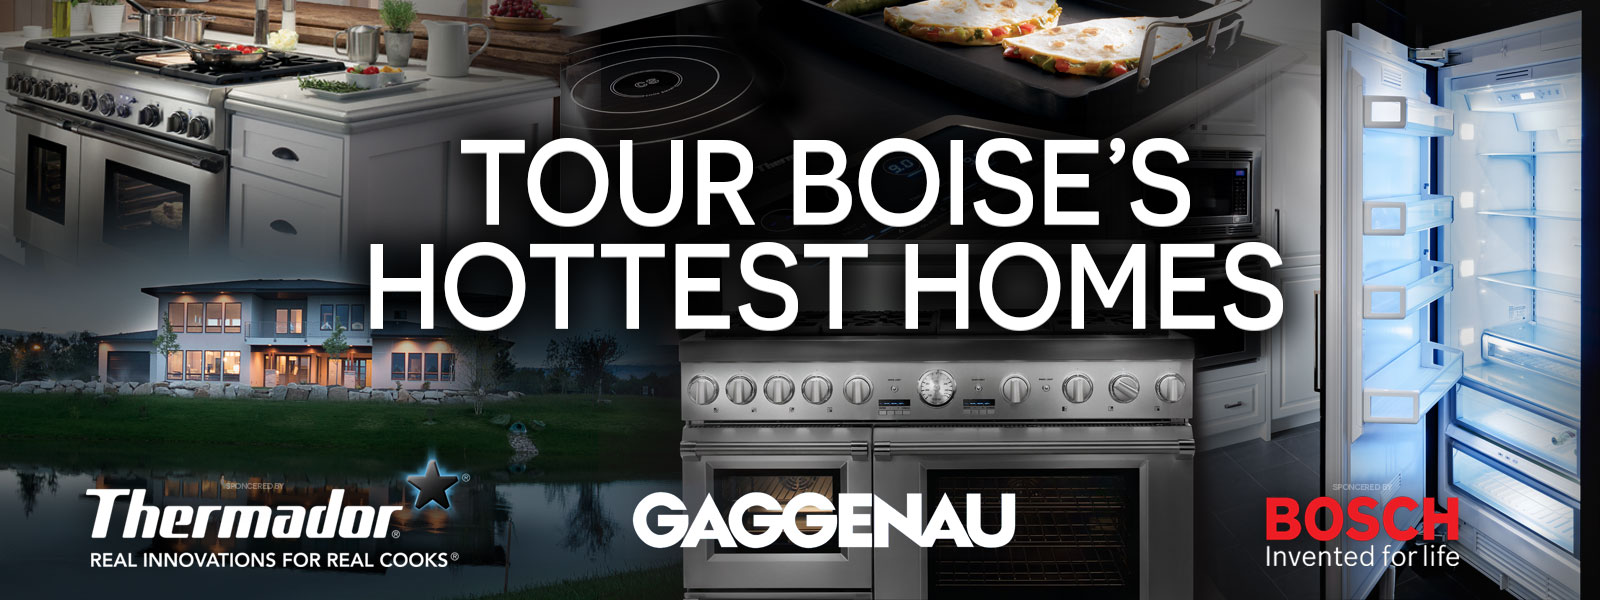 Tour Boise's Hottest Homes